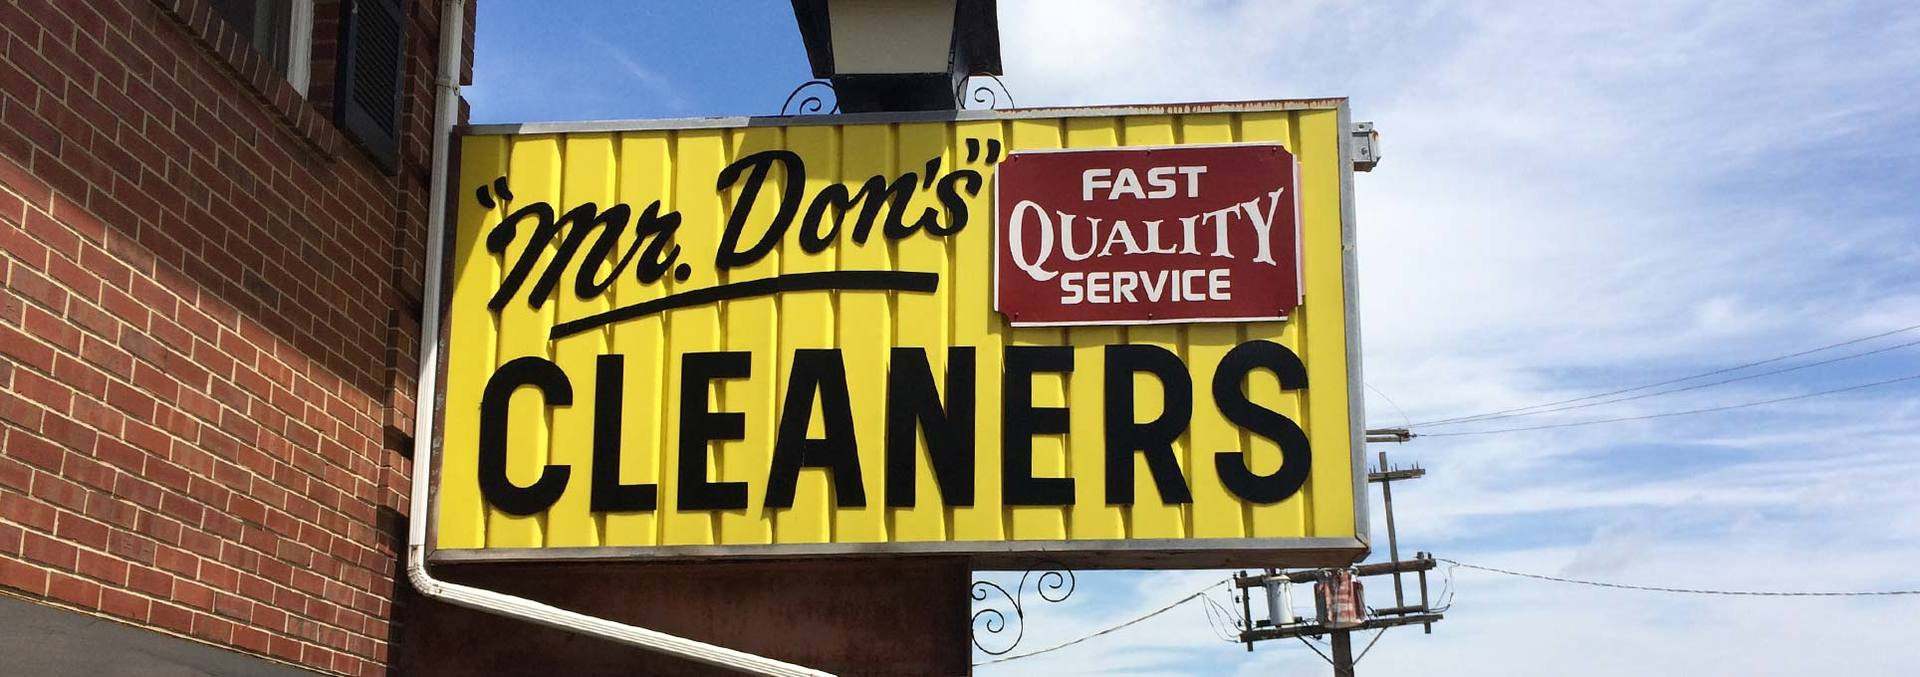 Mr. Don's Cleaners Inc. sign board